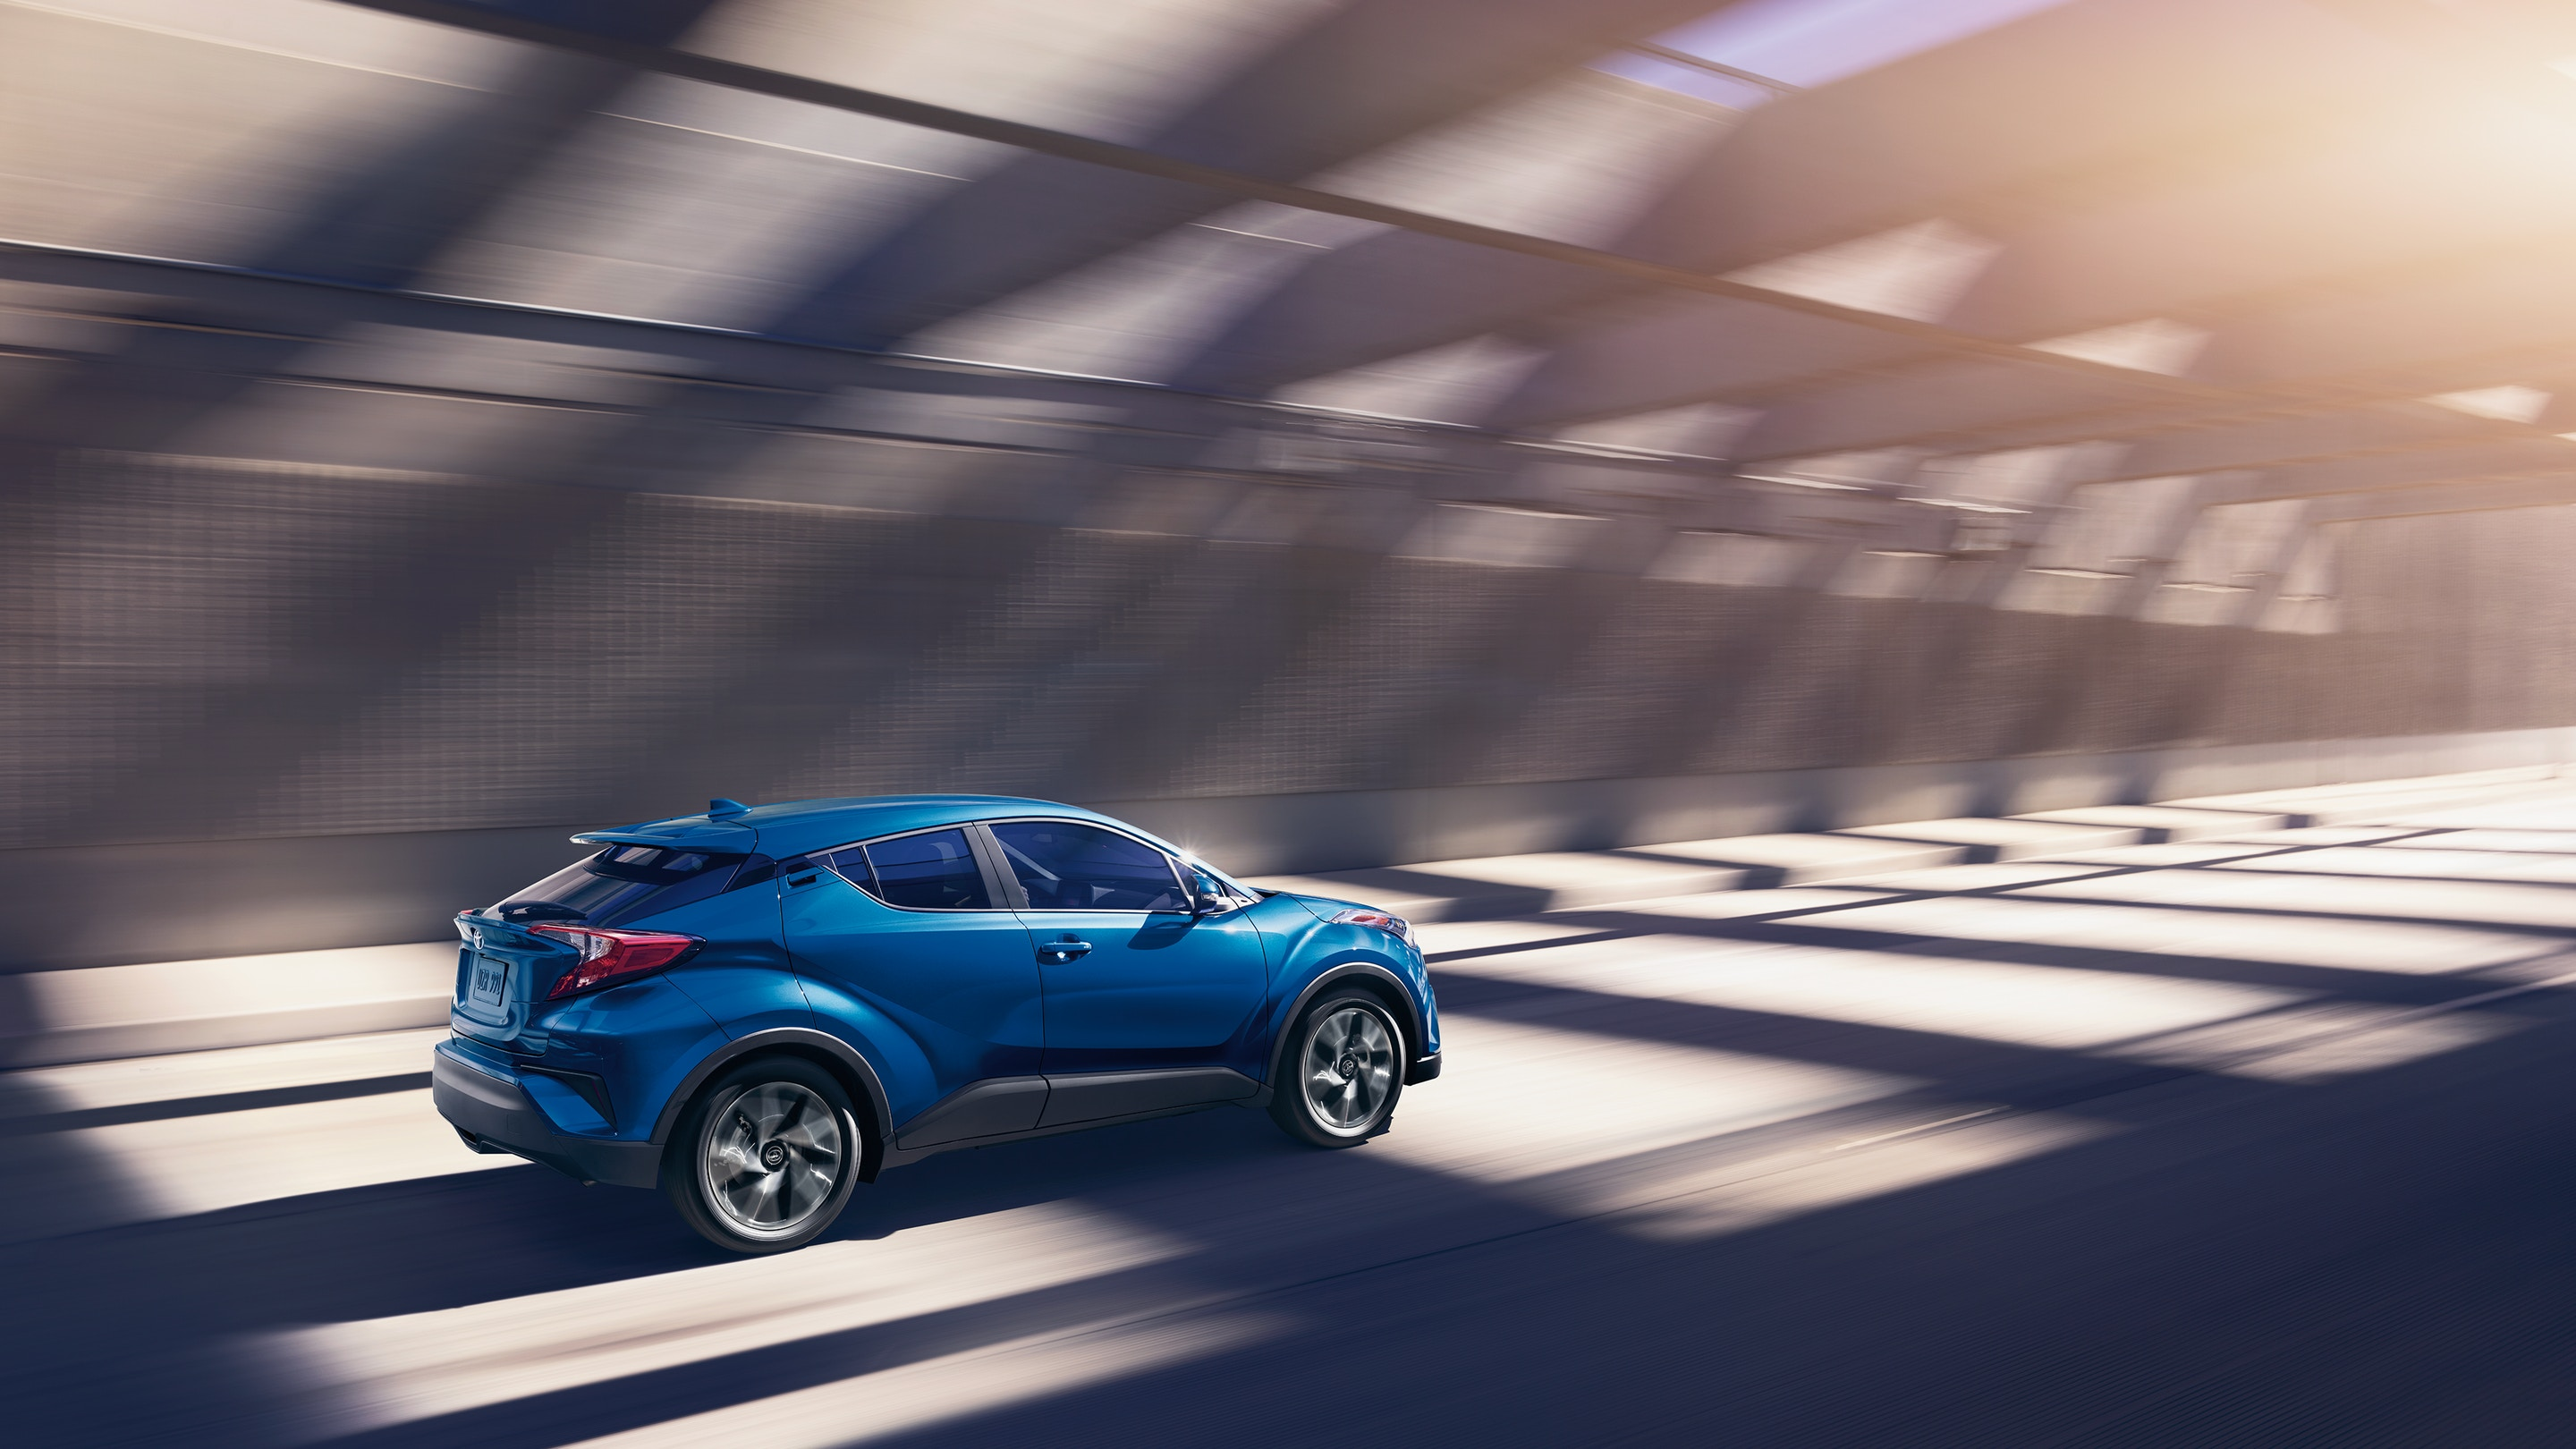 2019 Toyota C-HR for Sale near Grandview, MO